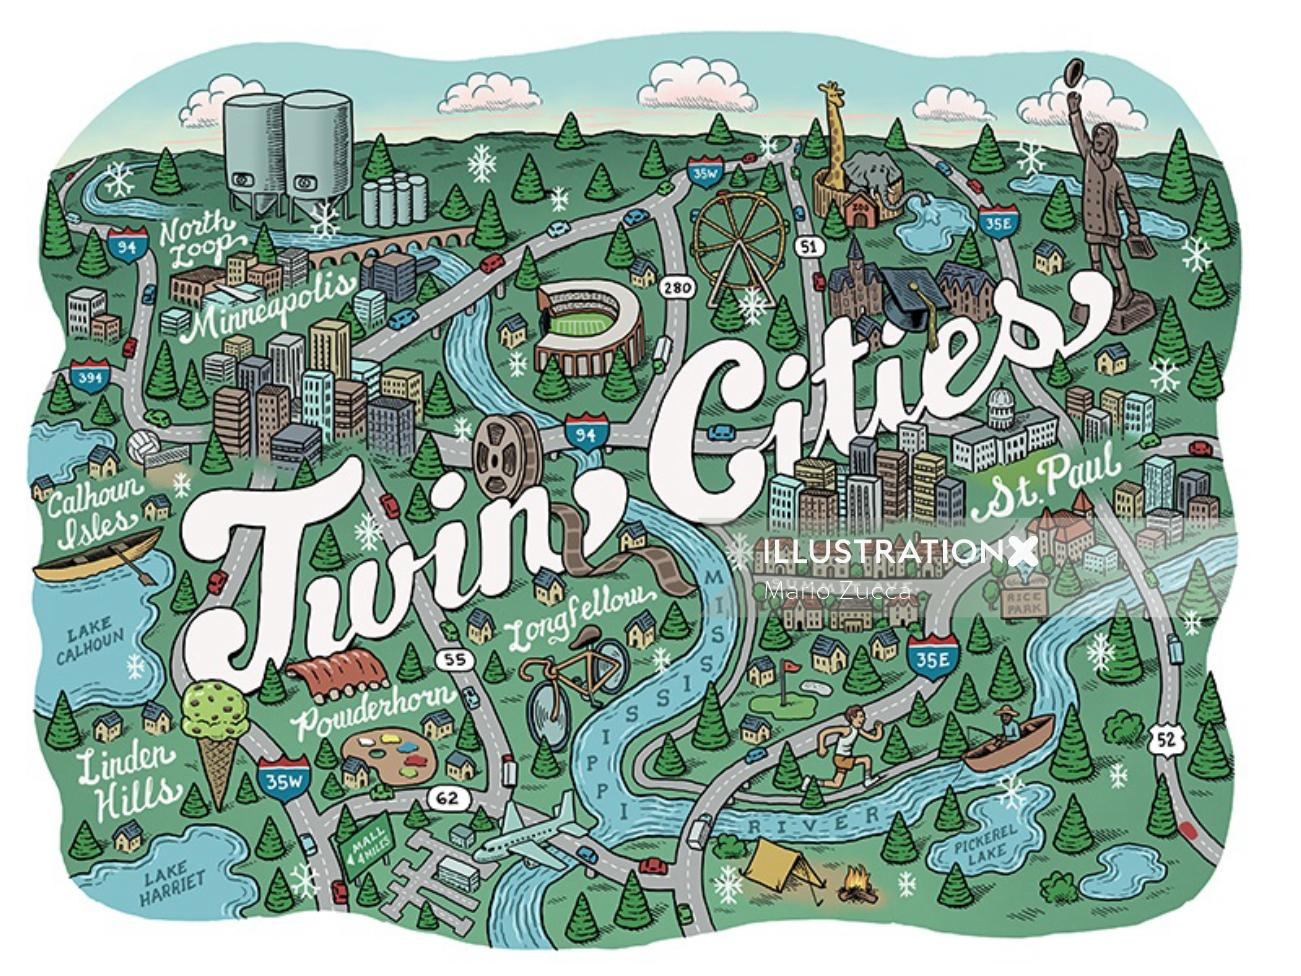 Illustrated map of Minnesota twin cities